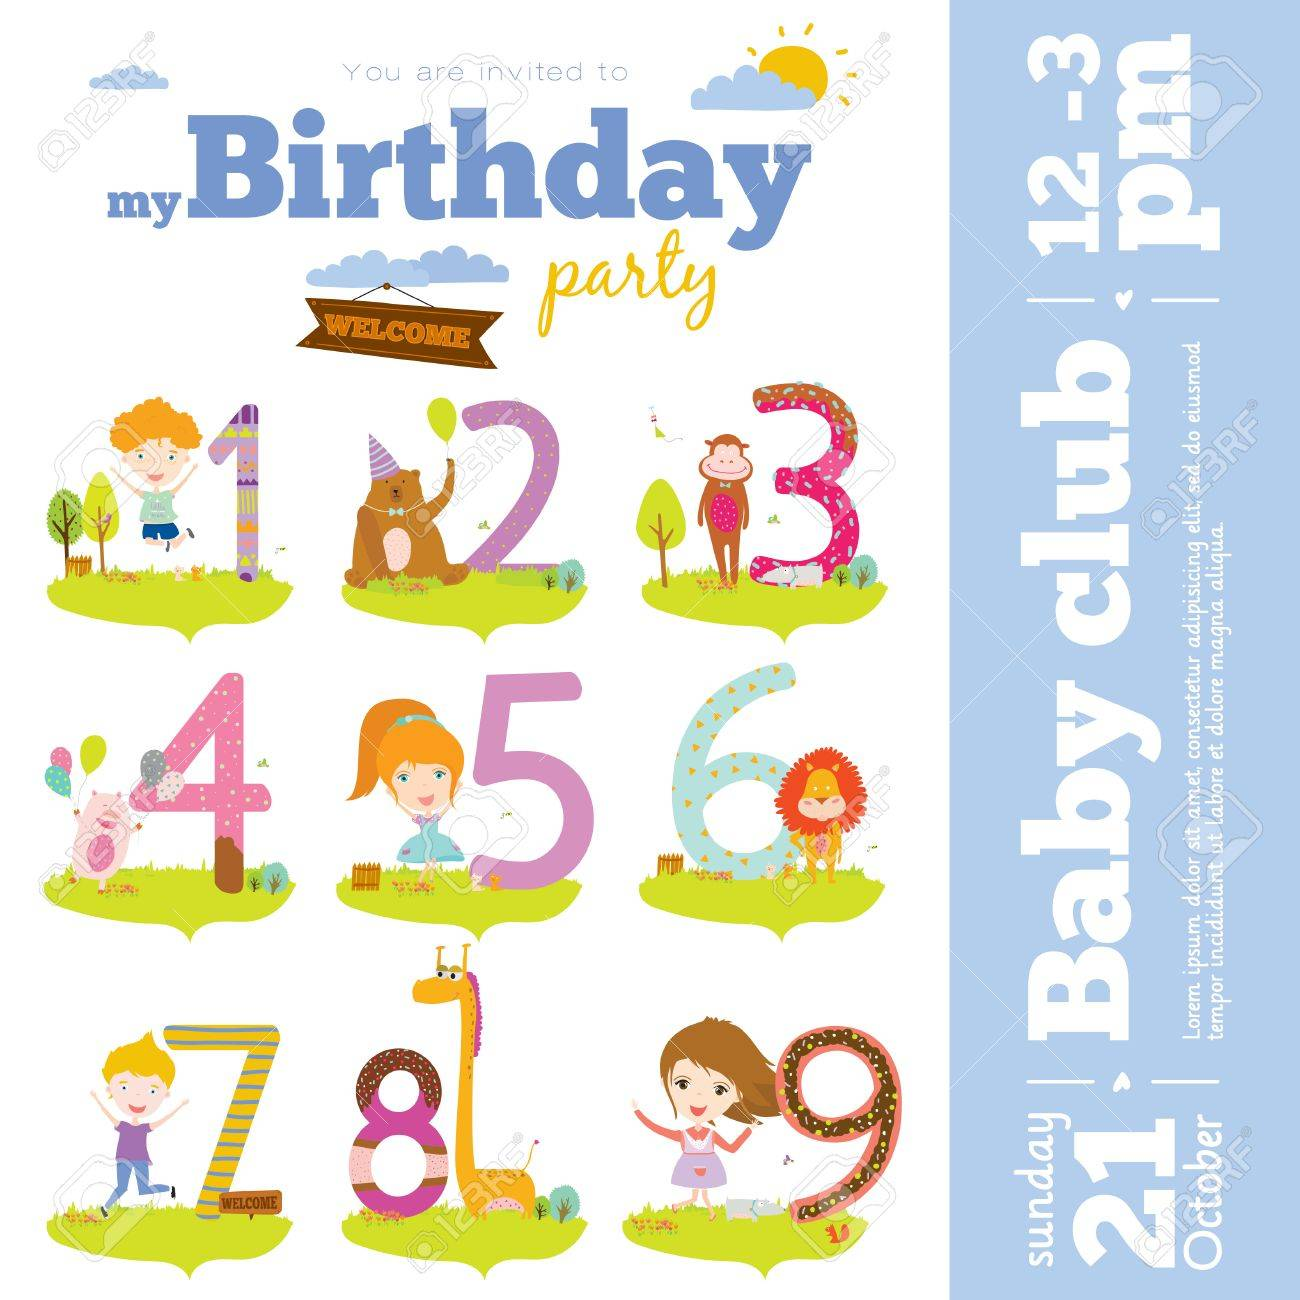 birthday party invitation card template ; 40347605-birthday-anniversary-numbers-with-cute-animals-and-kids-and-birthday-party-invitation-card-template-